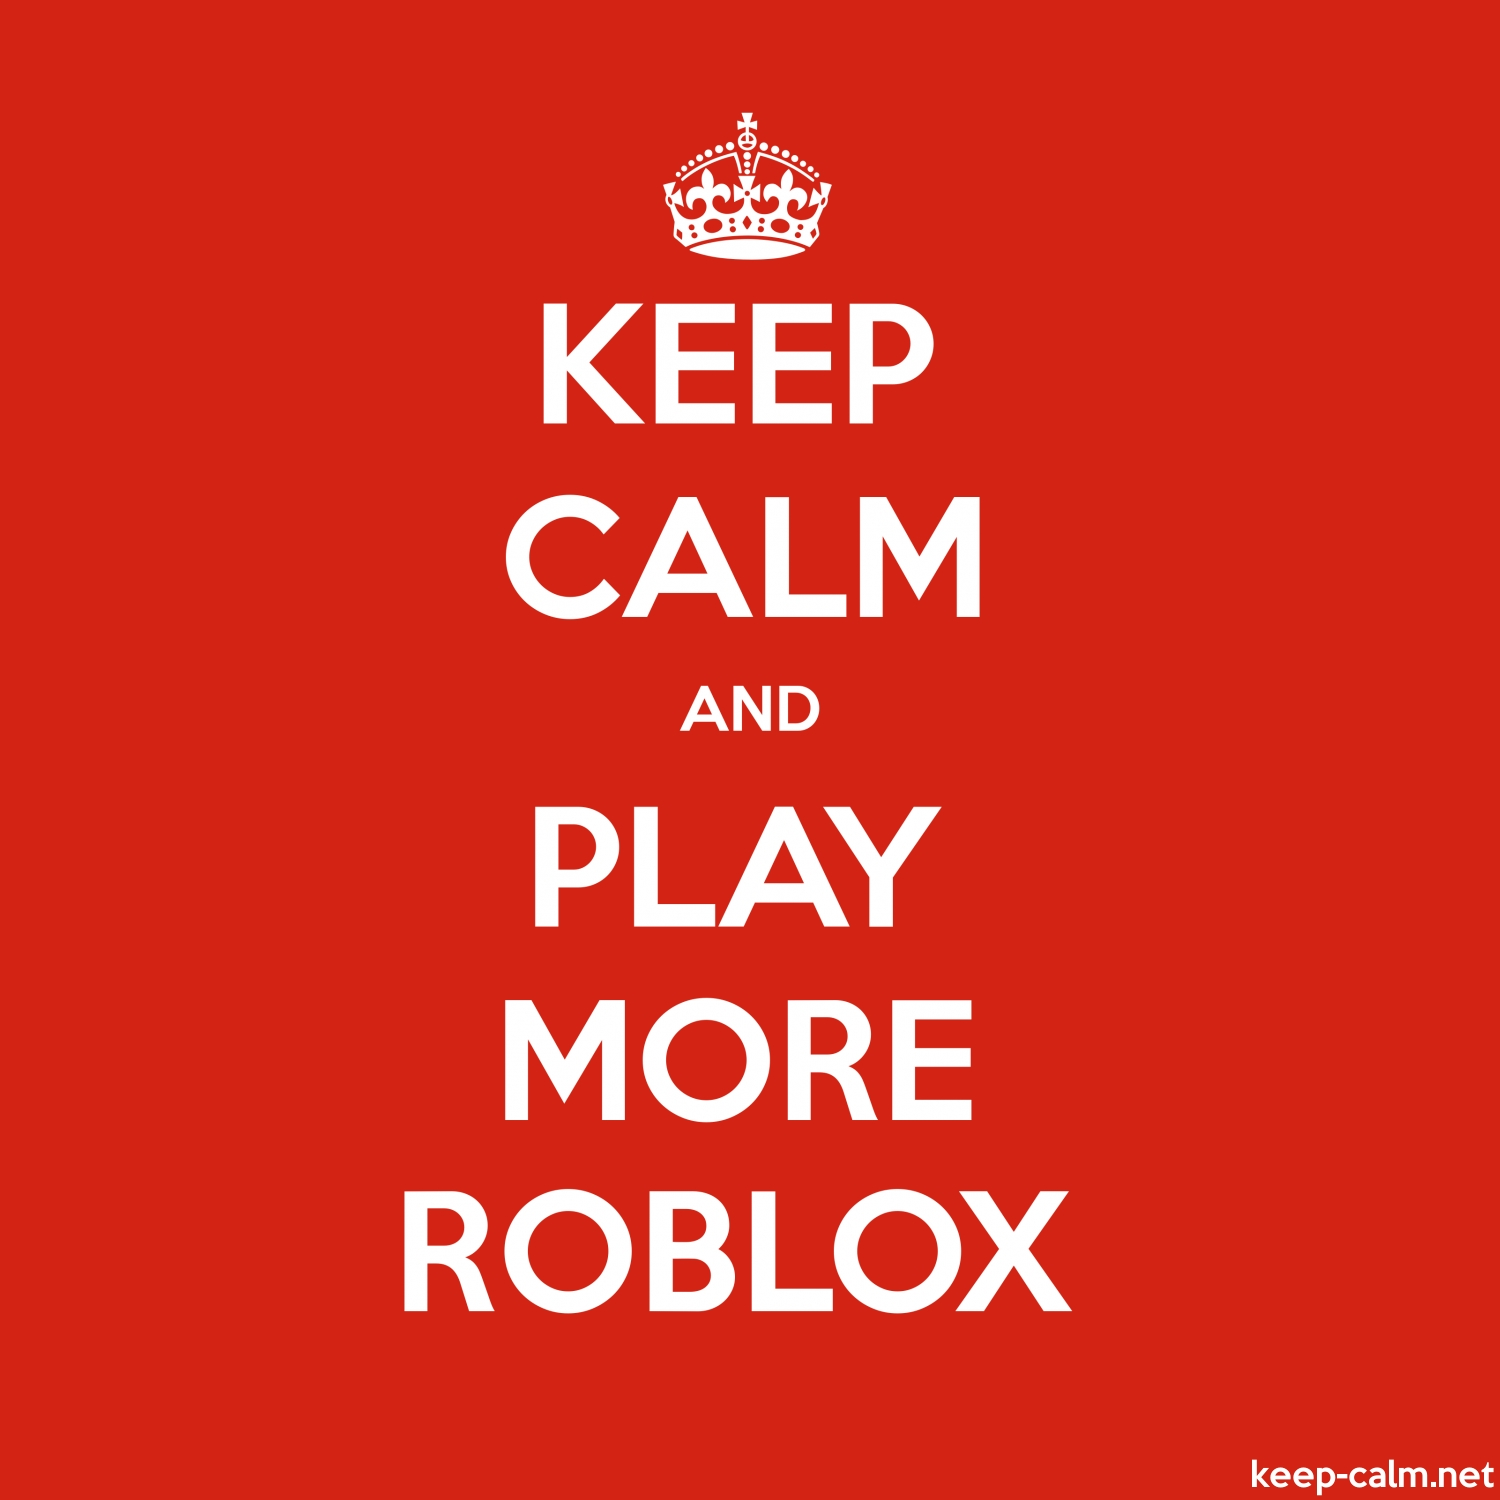 Roblox Ro Bio Trying To Make A Zombie Virus Youtube Free Hack - Keep Calm And Play More Roblox Keep Calm Net